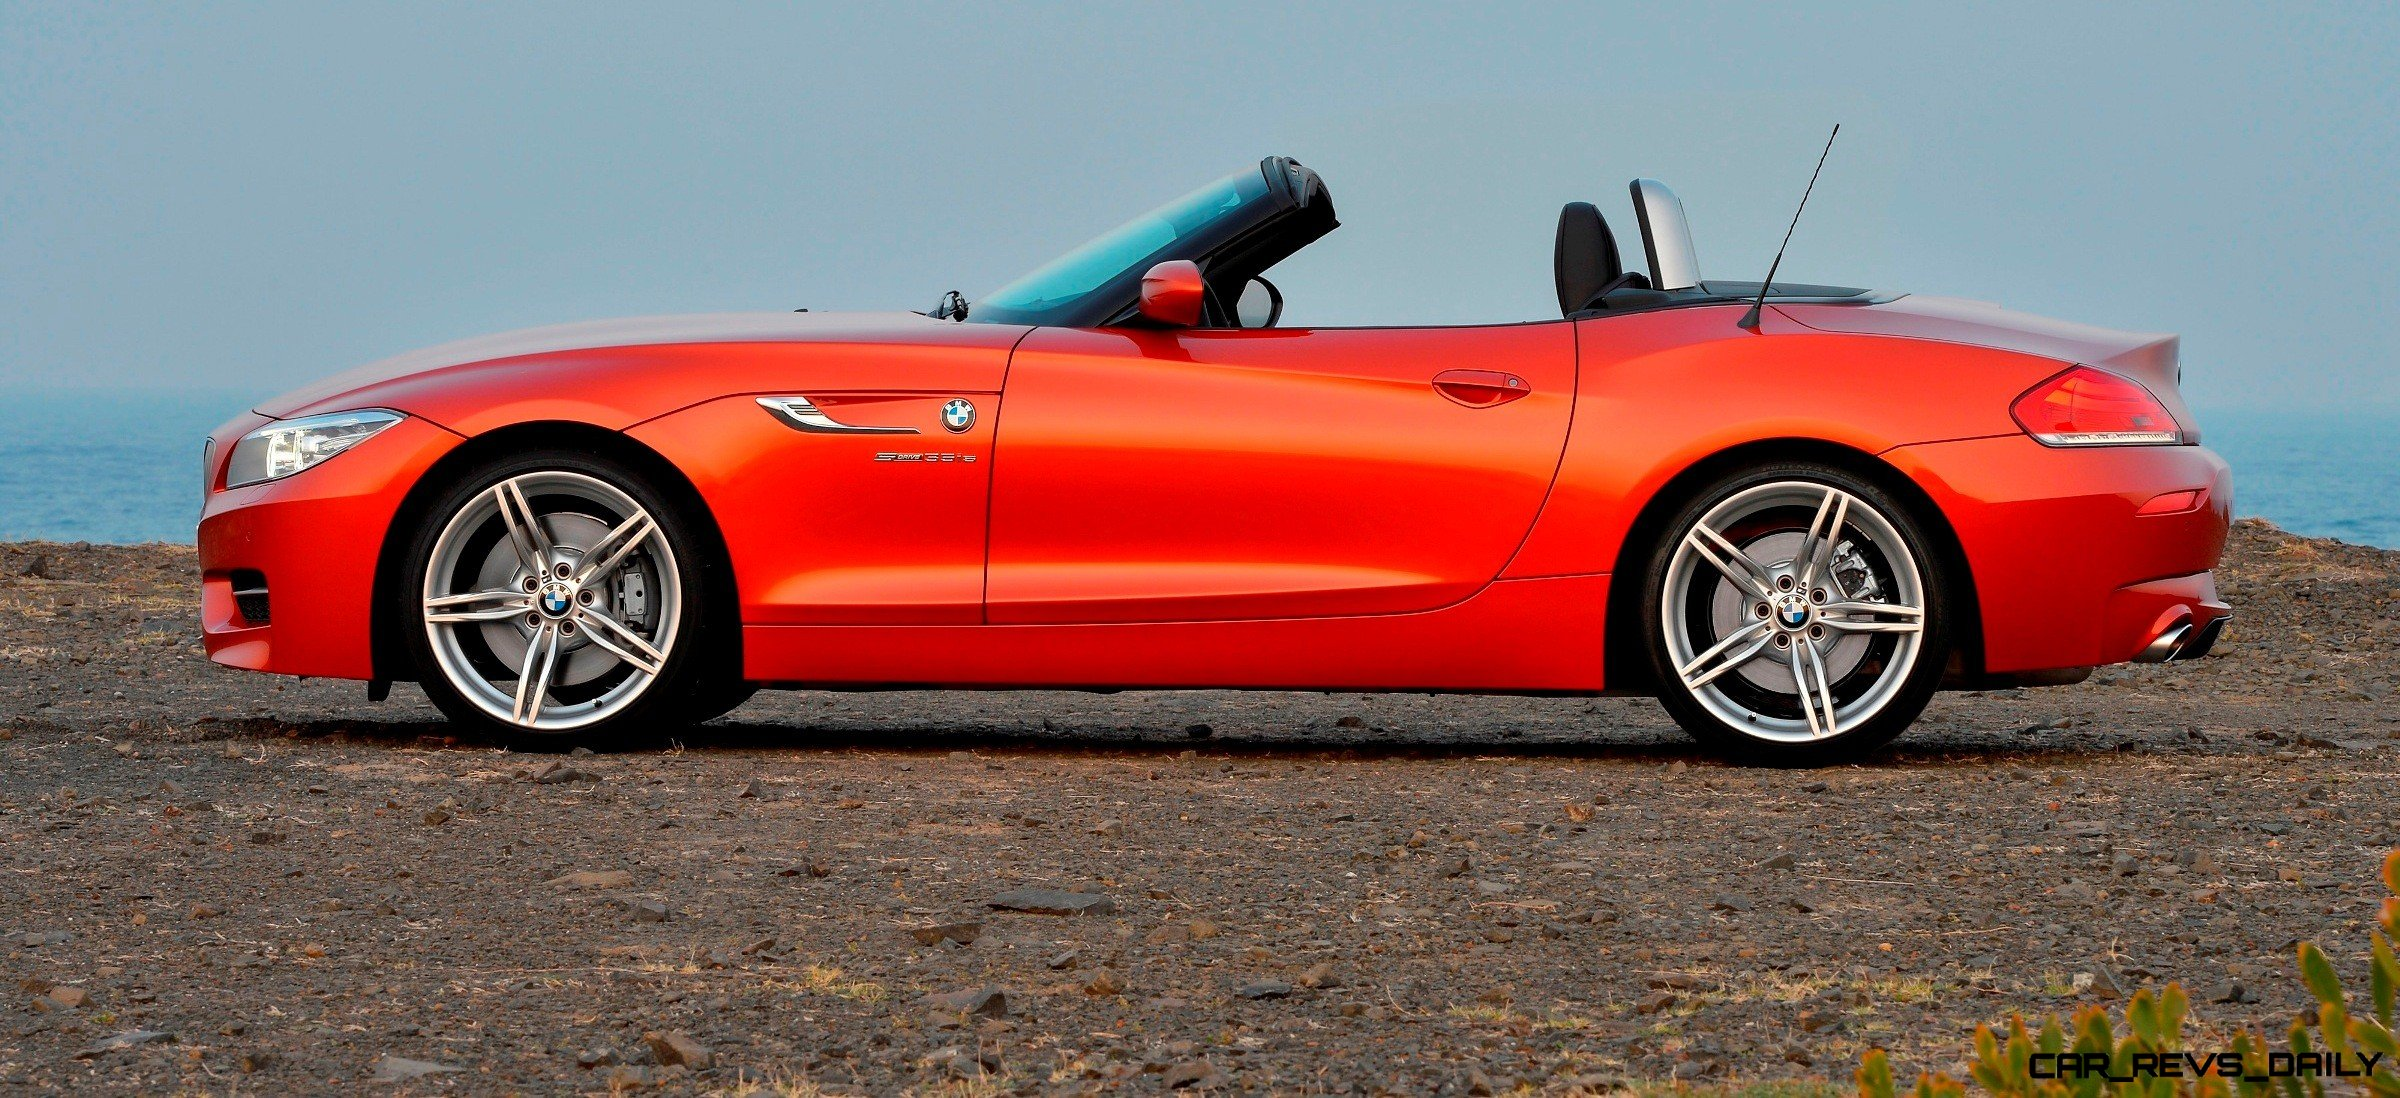 Put Simply: Is This Tiny Sports Car With Old Fashioned Suspension Possibly  Worth 3X The Price Of The MX 5 Club?